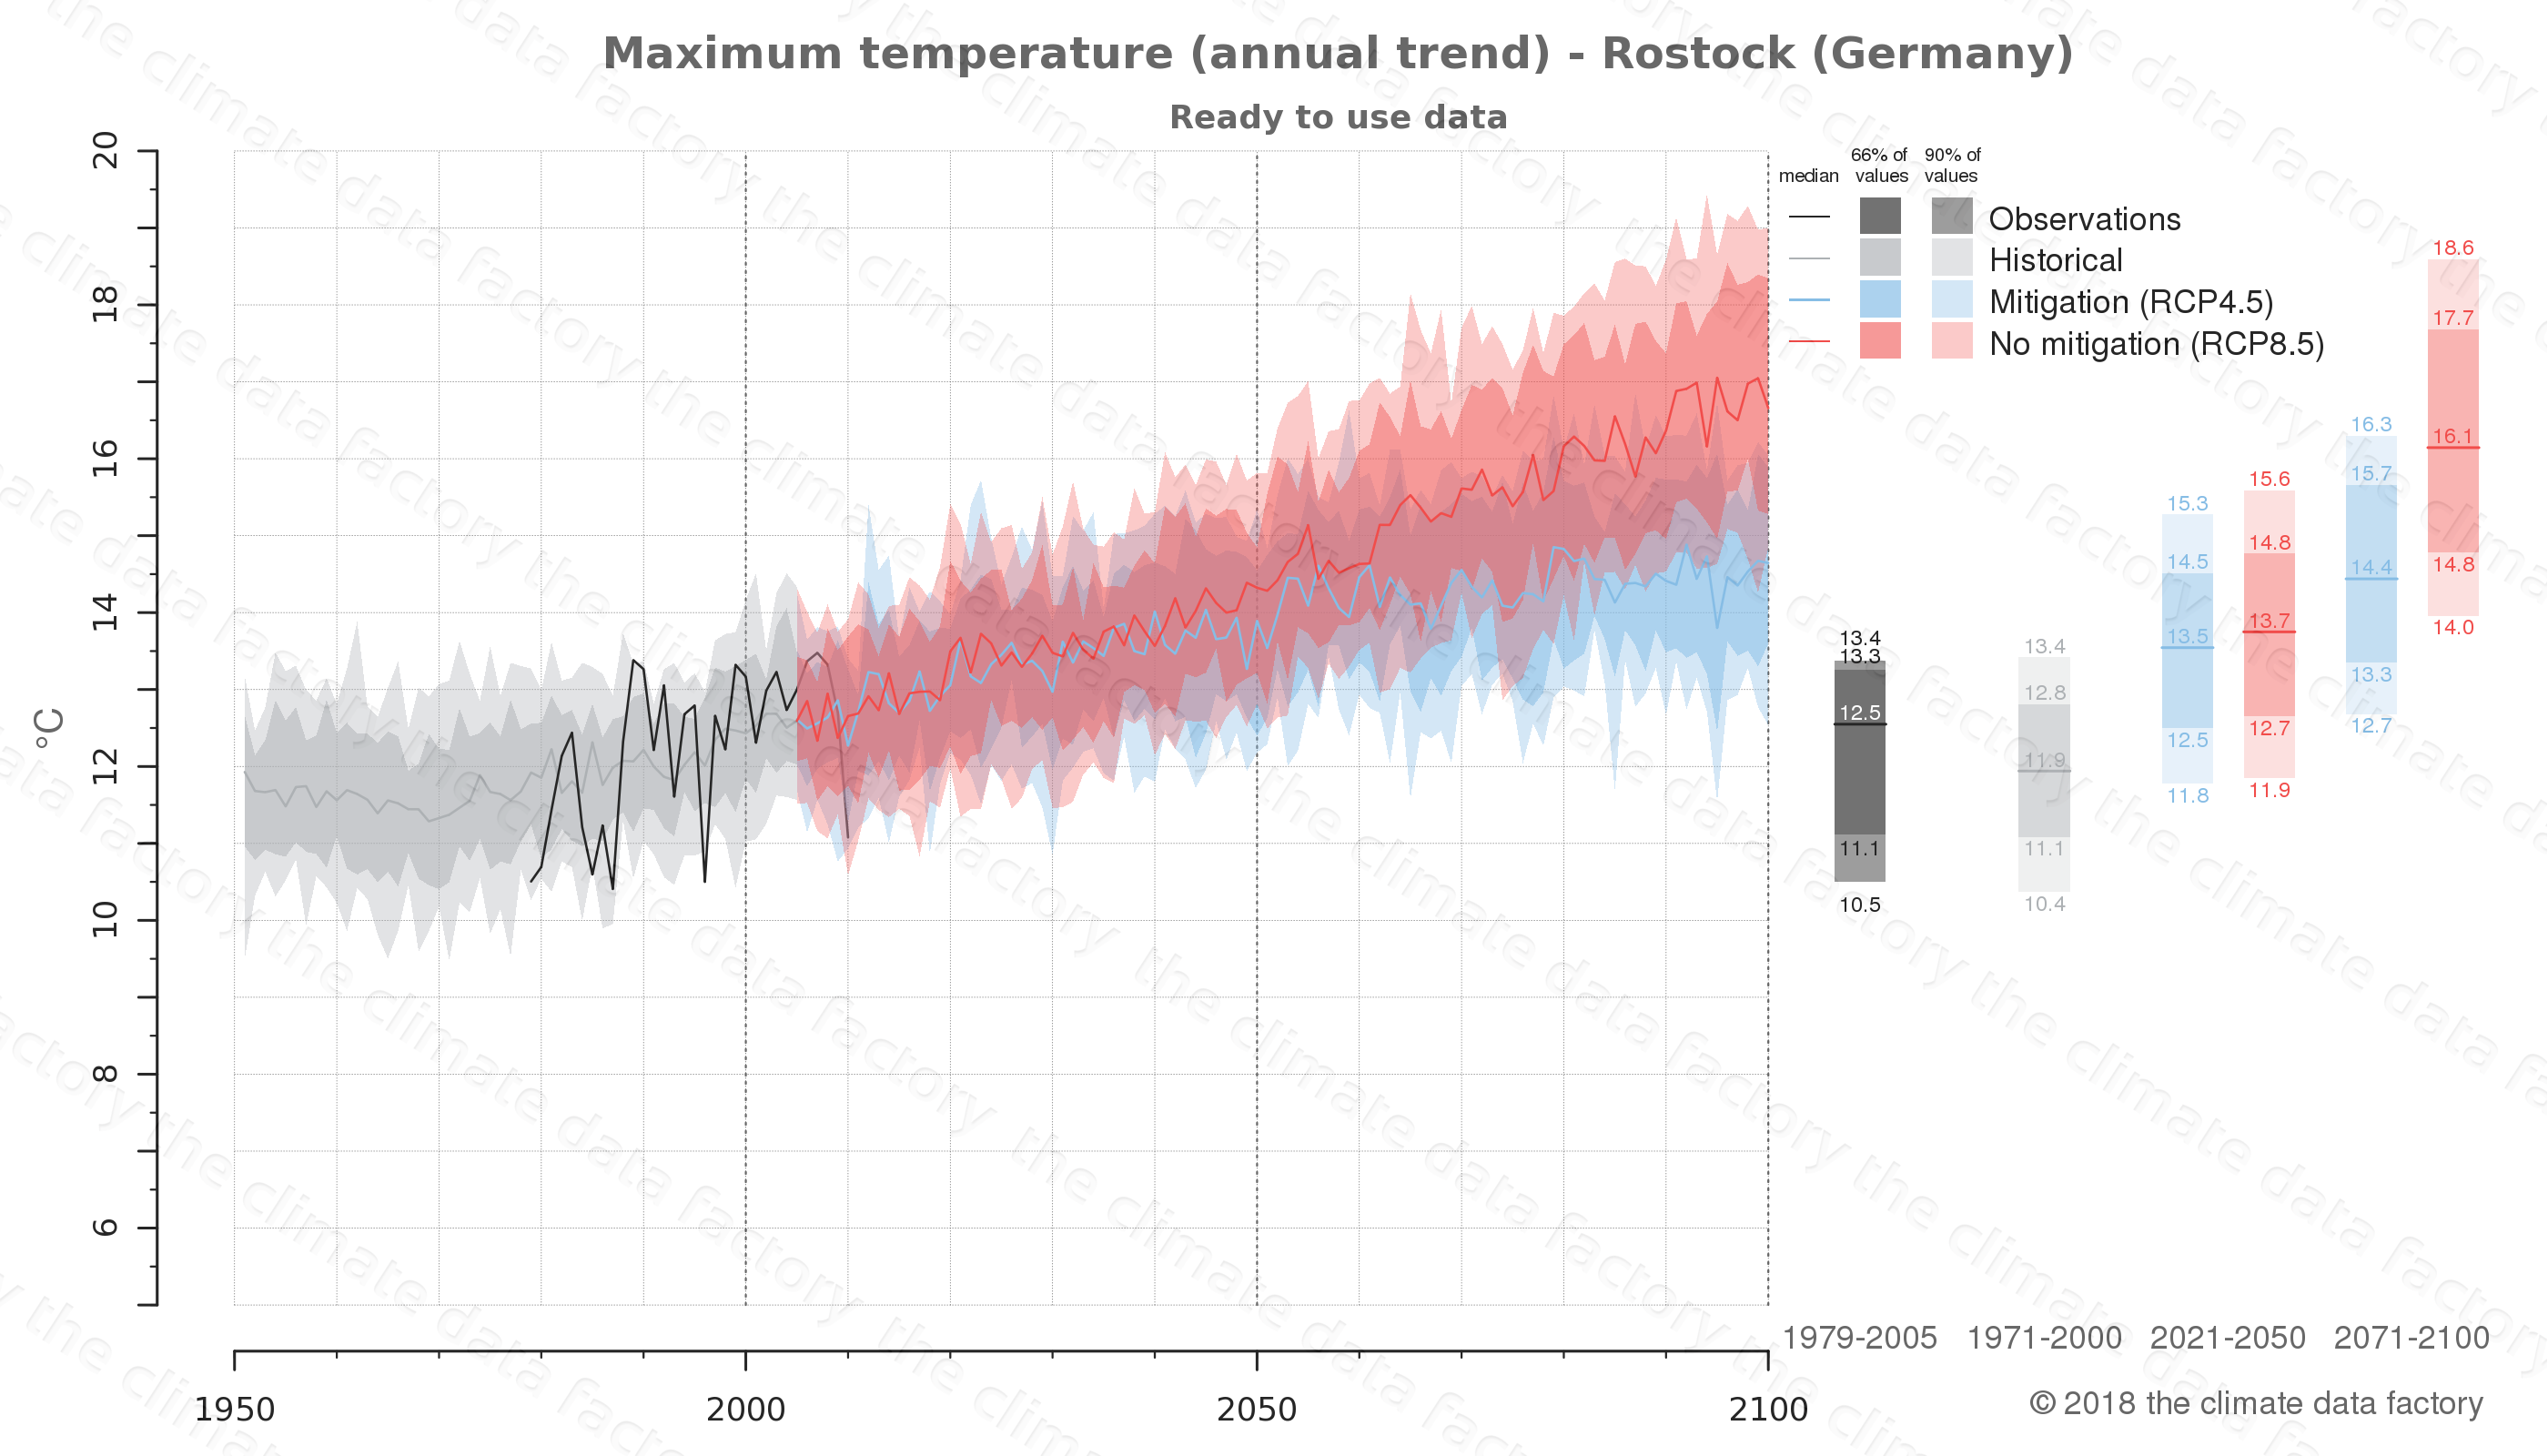 climate change data policy adaptation climate graph city data maximum-temperature rostock germany